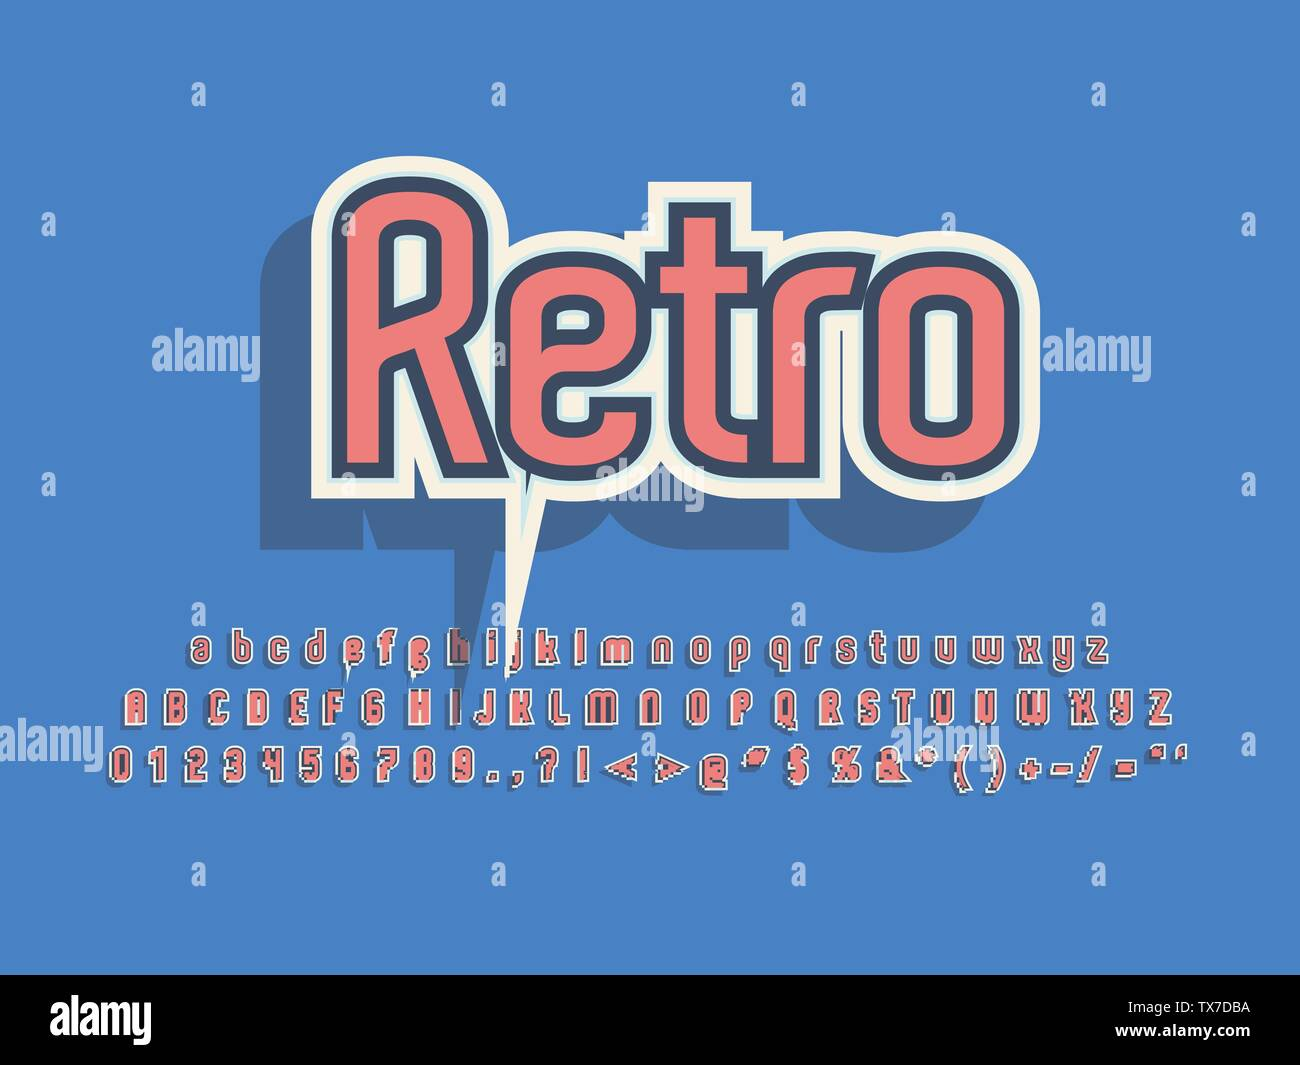 Retro font and alphabet. Stock vector illustration - Stock Image